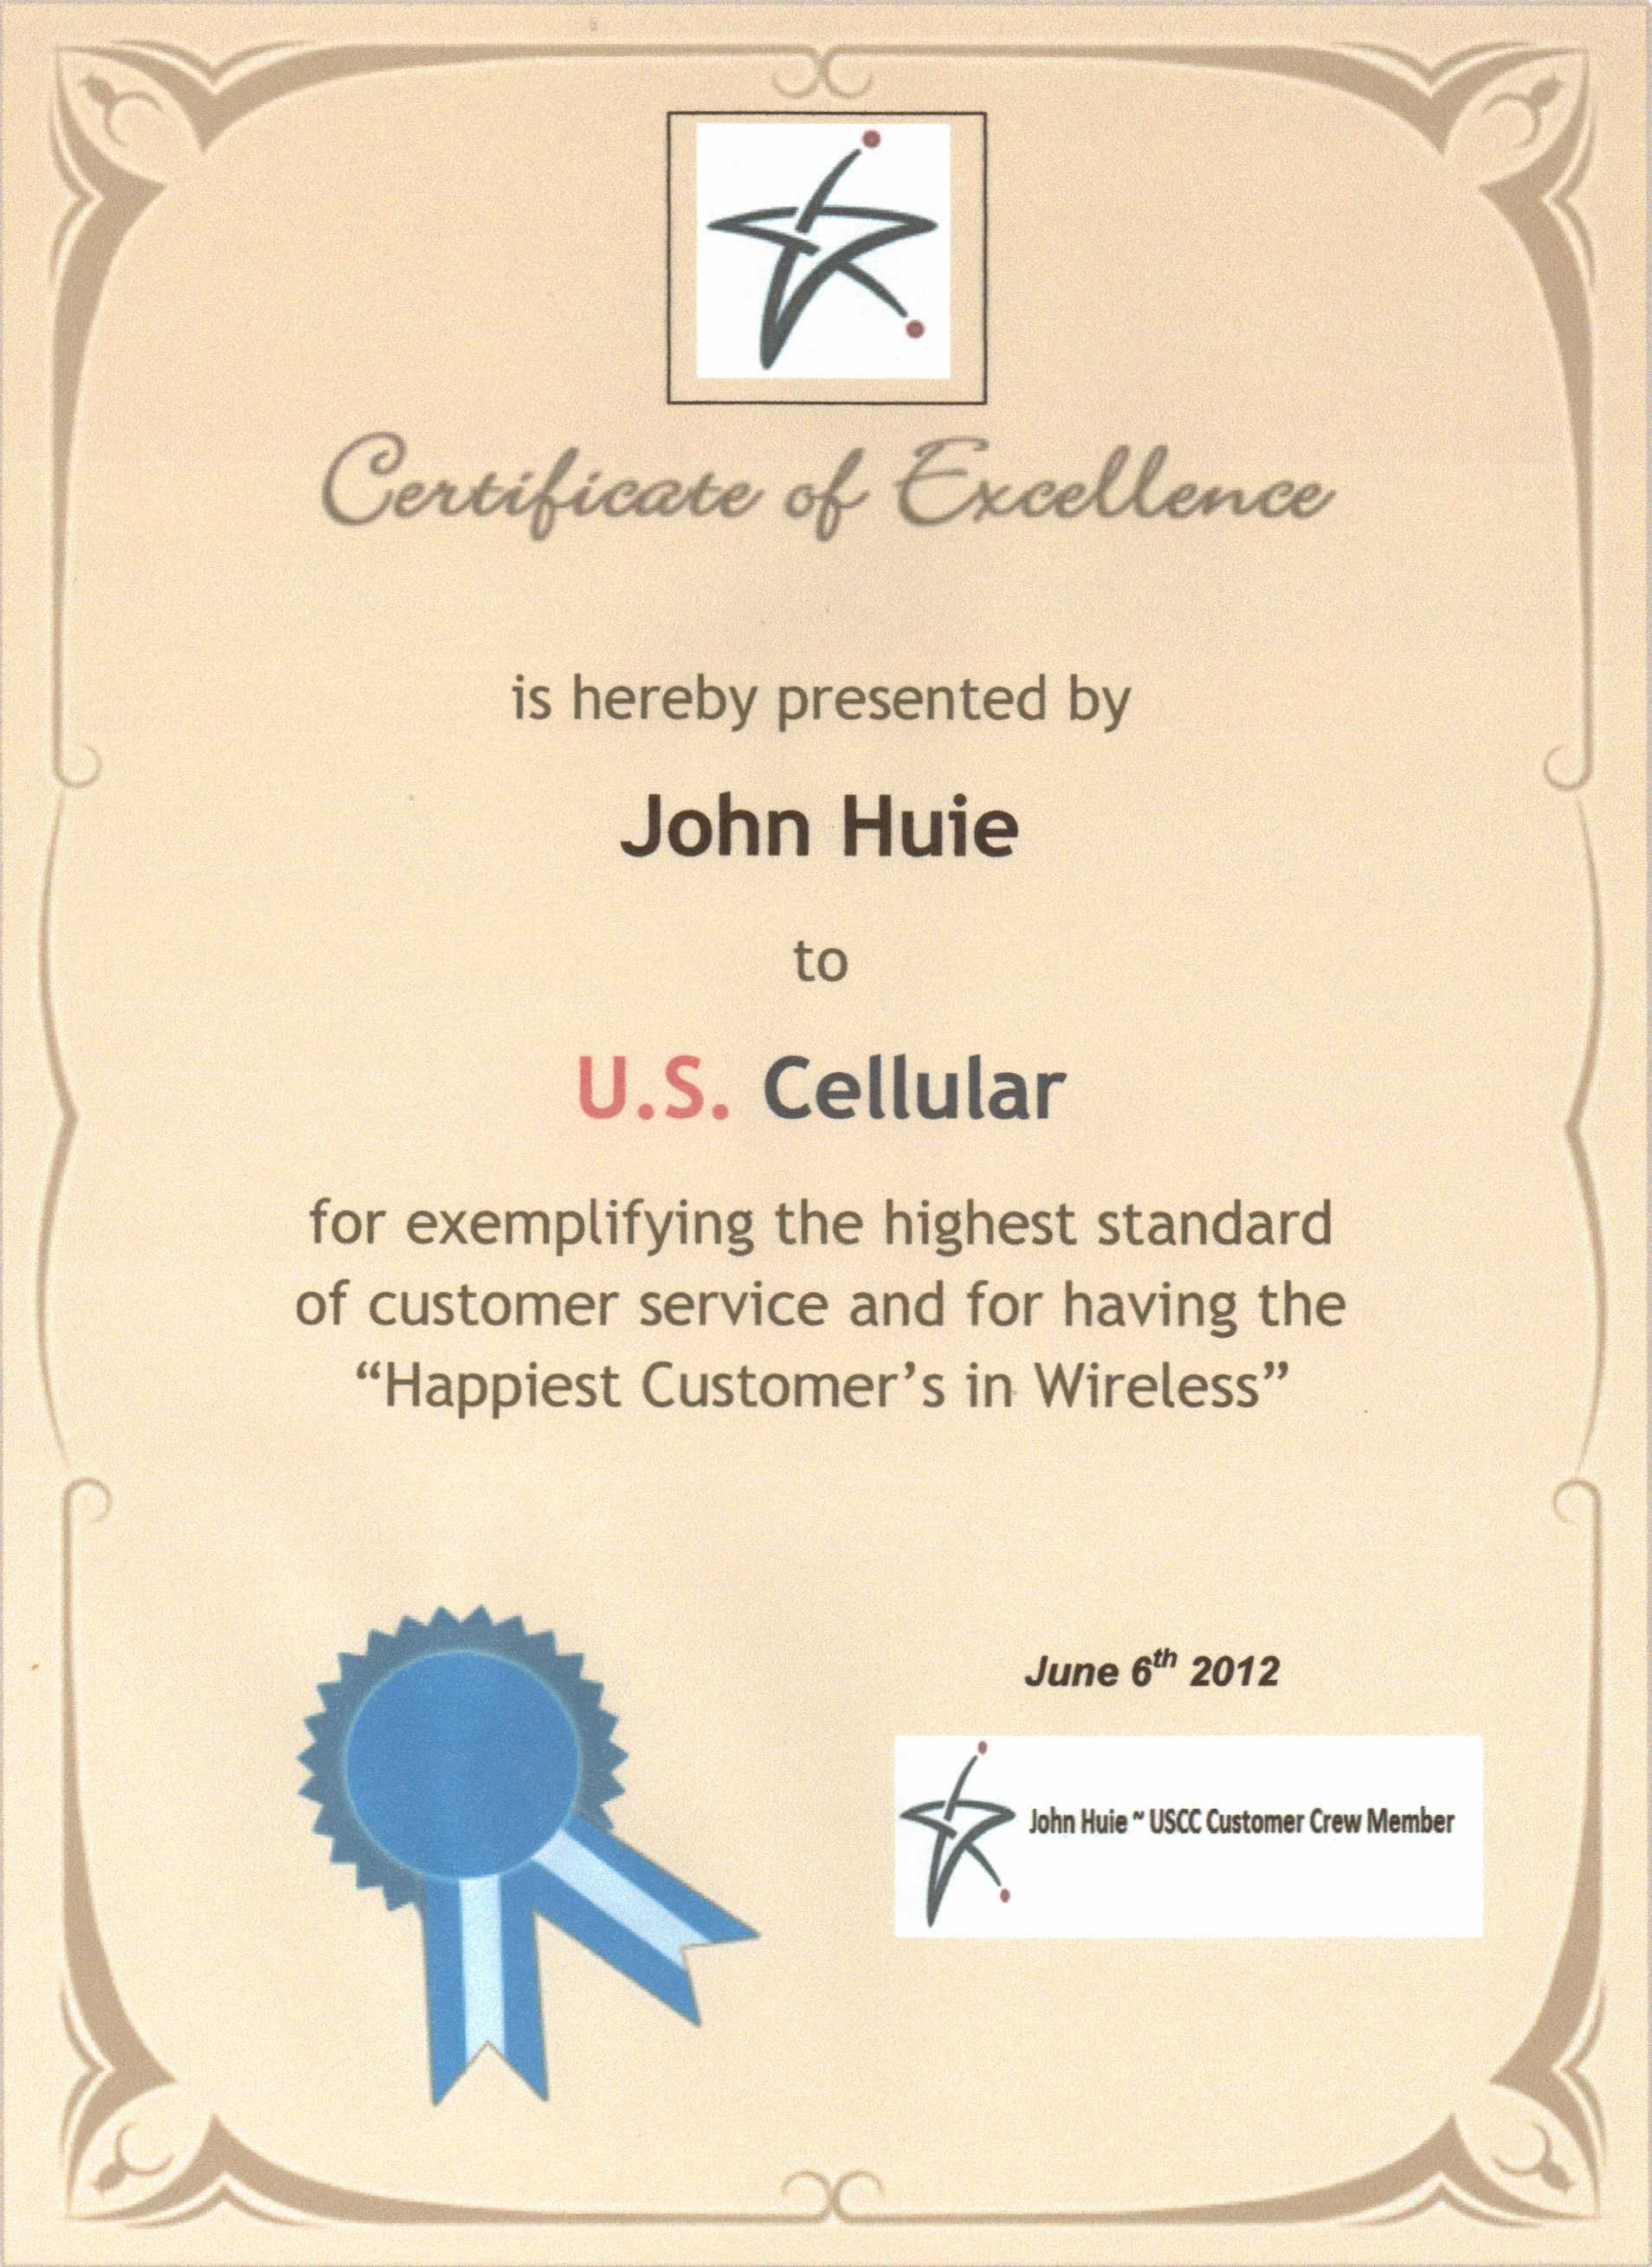 Certificate of Excellence Award presented to U.S. Cellular ~ USCC Customer Crew Member